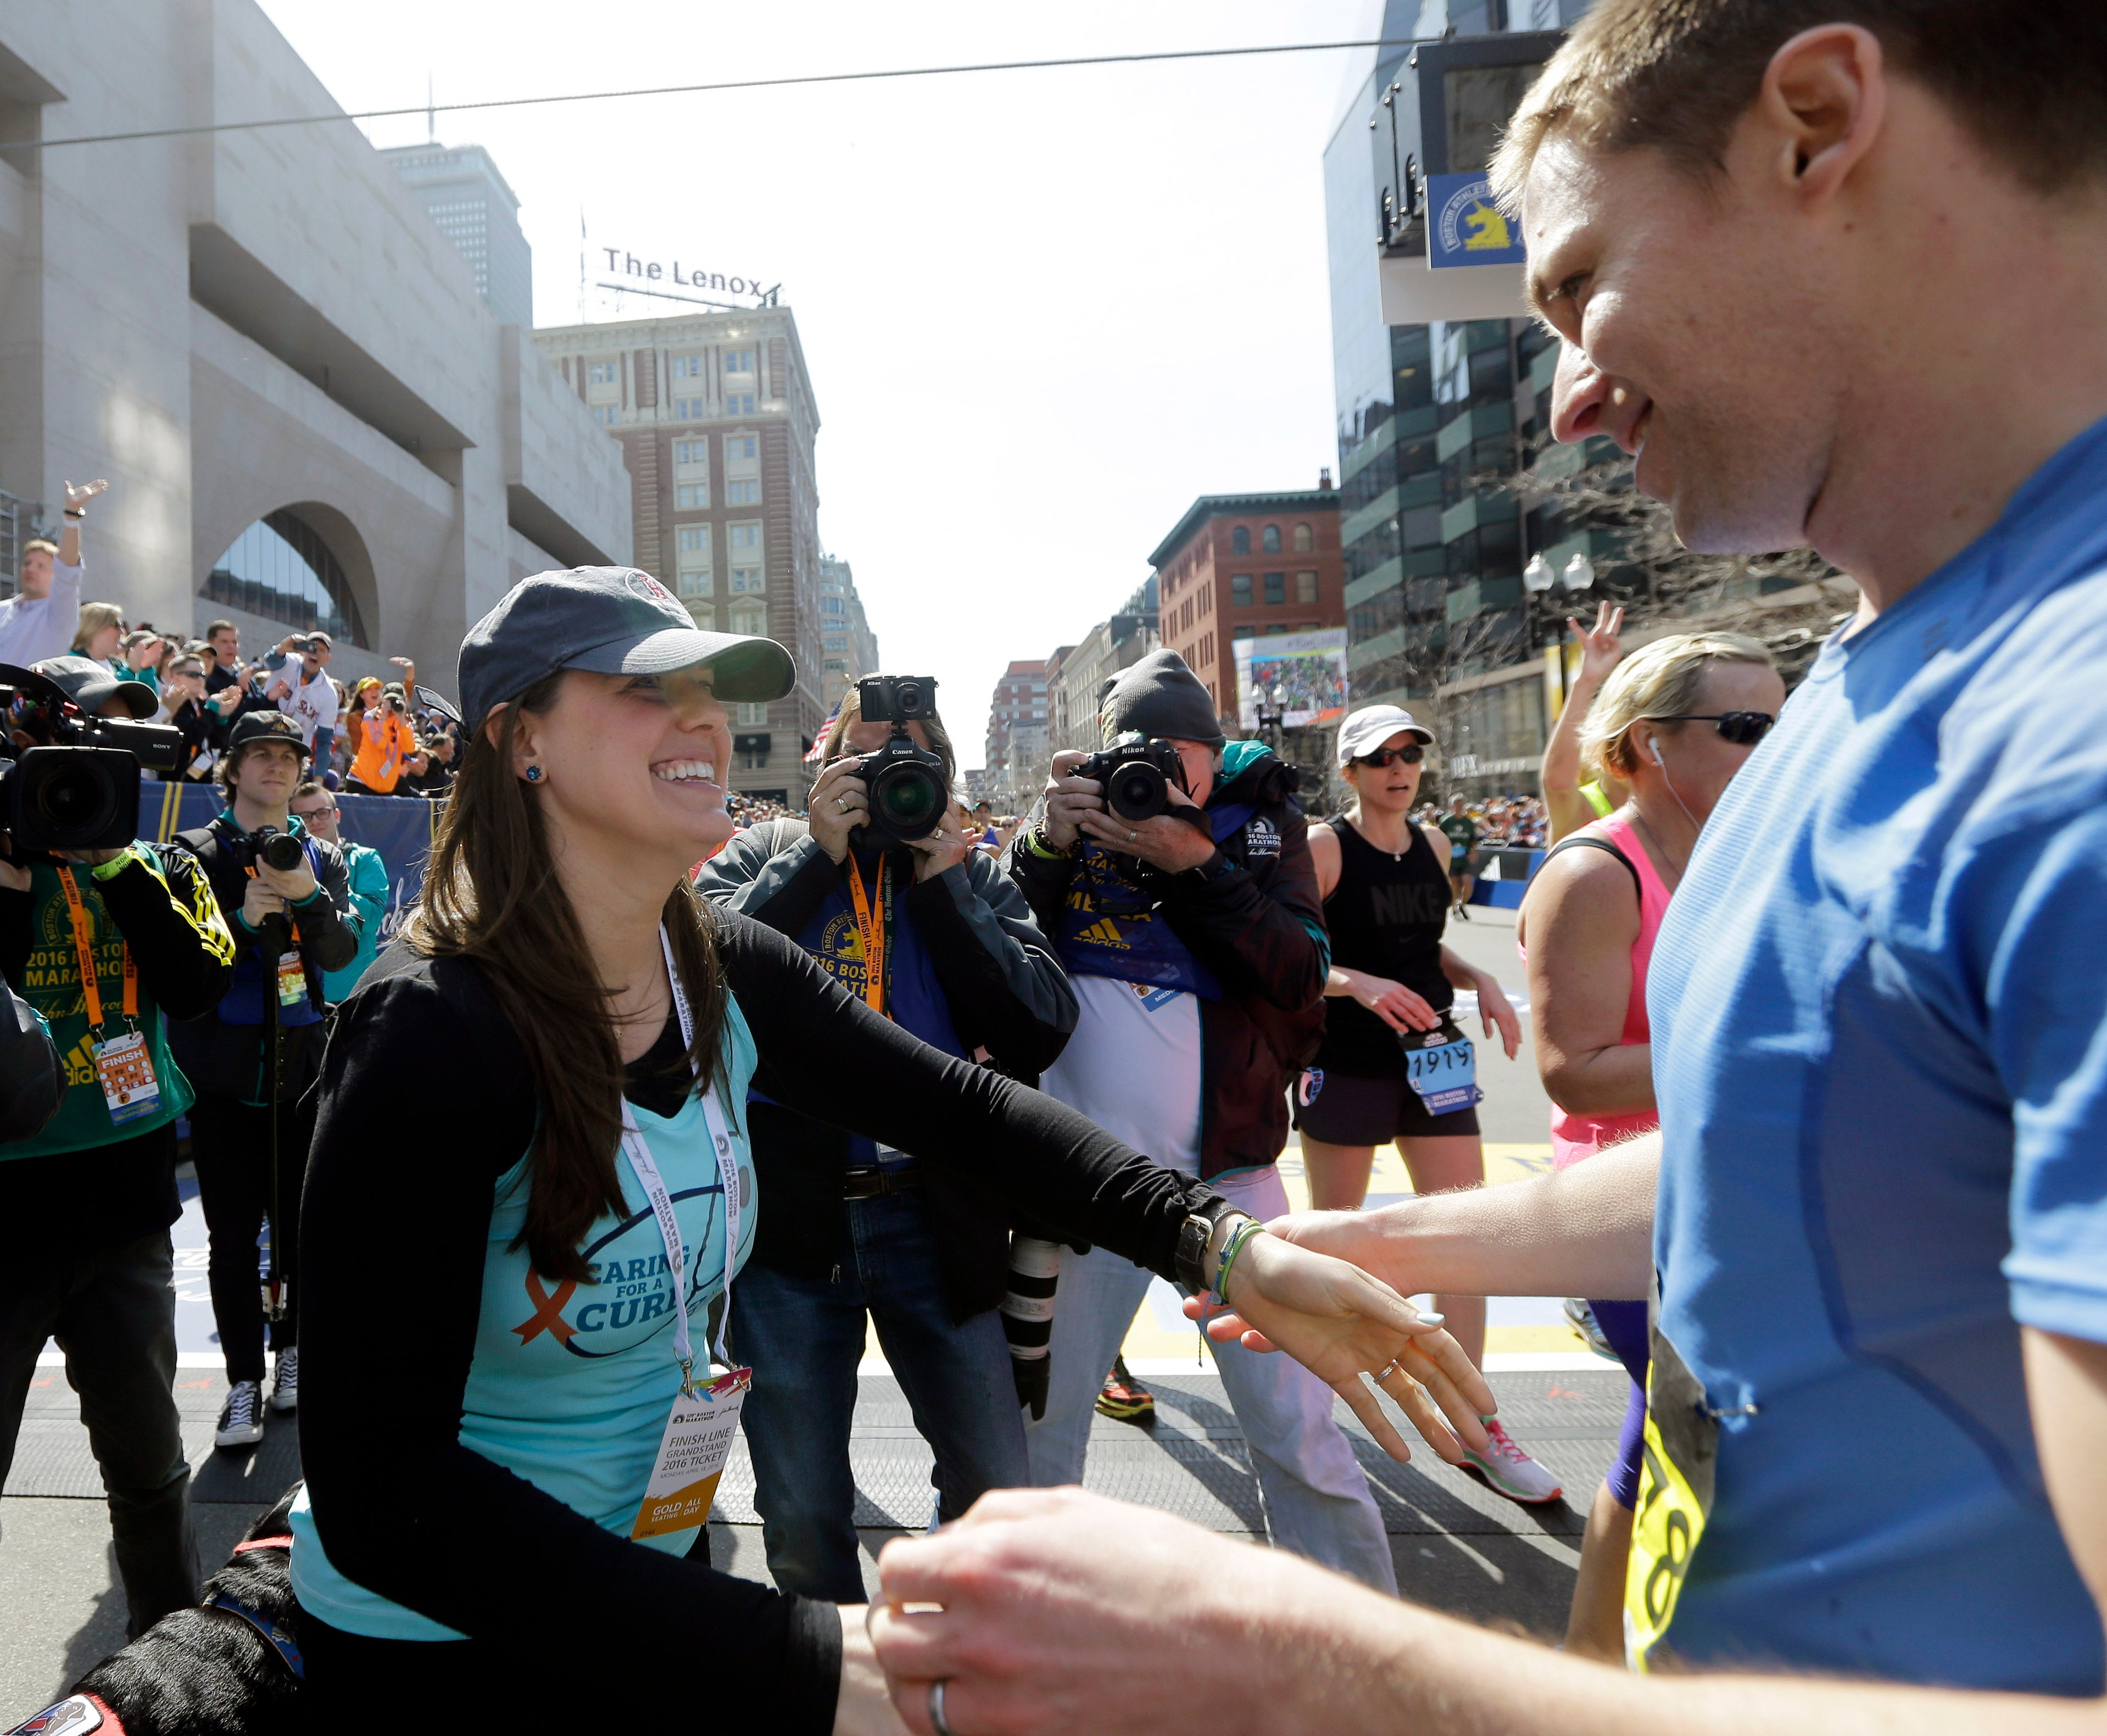 Boston Marathon bombing survivor Patrick Downes, right, gets a hug from his wife Jessica after finishing the the 120th Boston Marathon on Monday, April 18, 2016, in Boston. Both lost a leg in the 2013 bombings. (AP Photo/Elise Amendola)